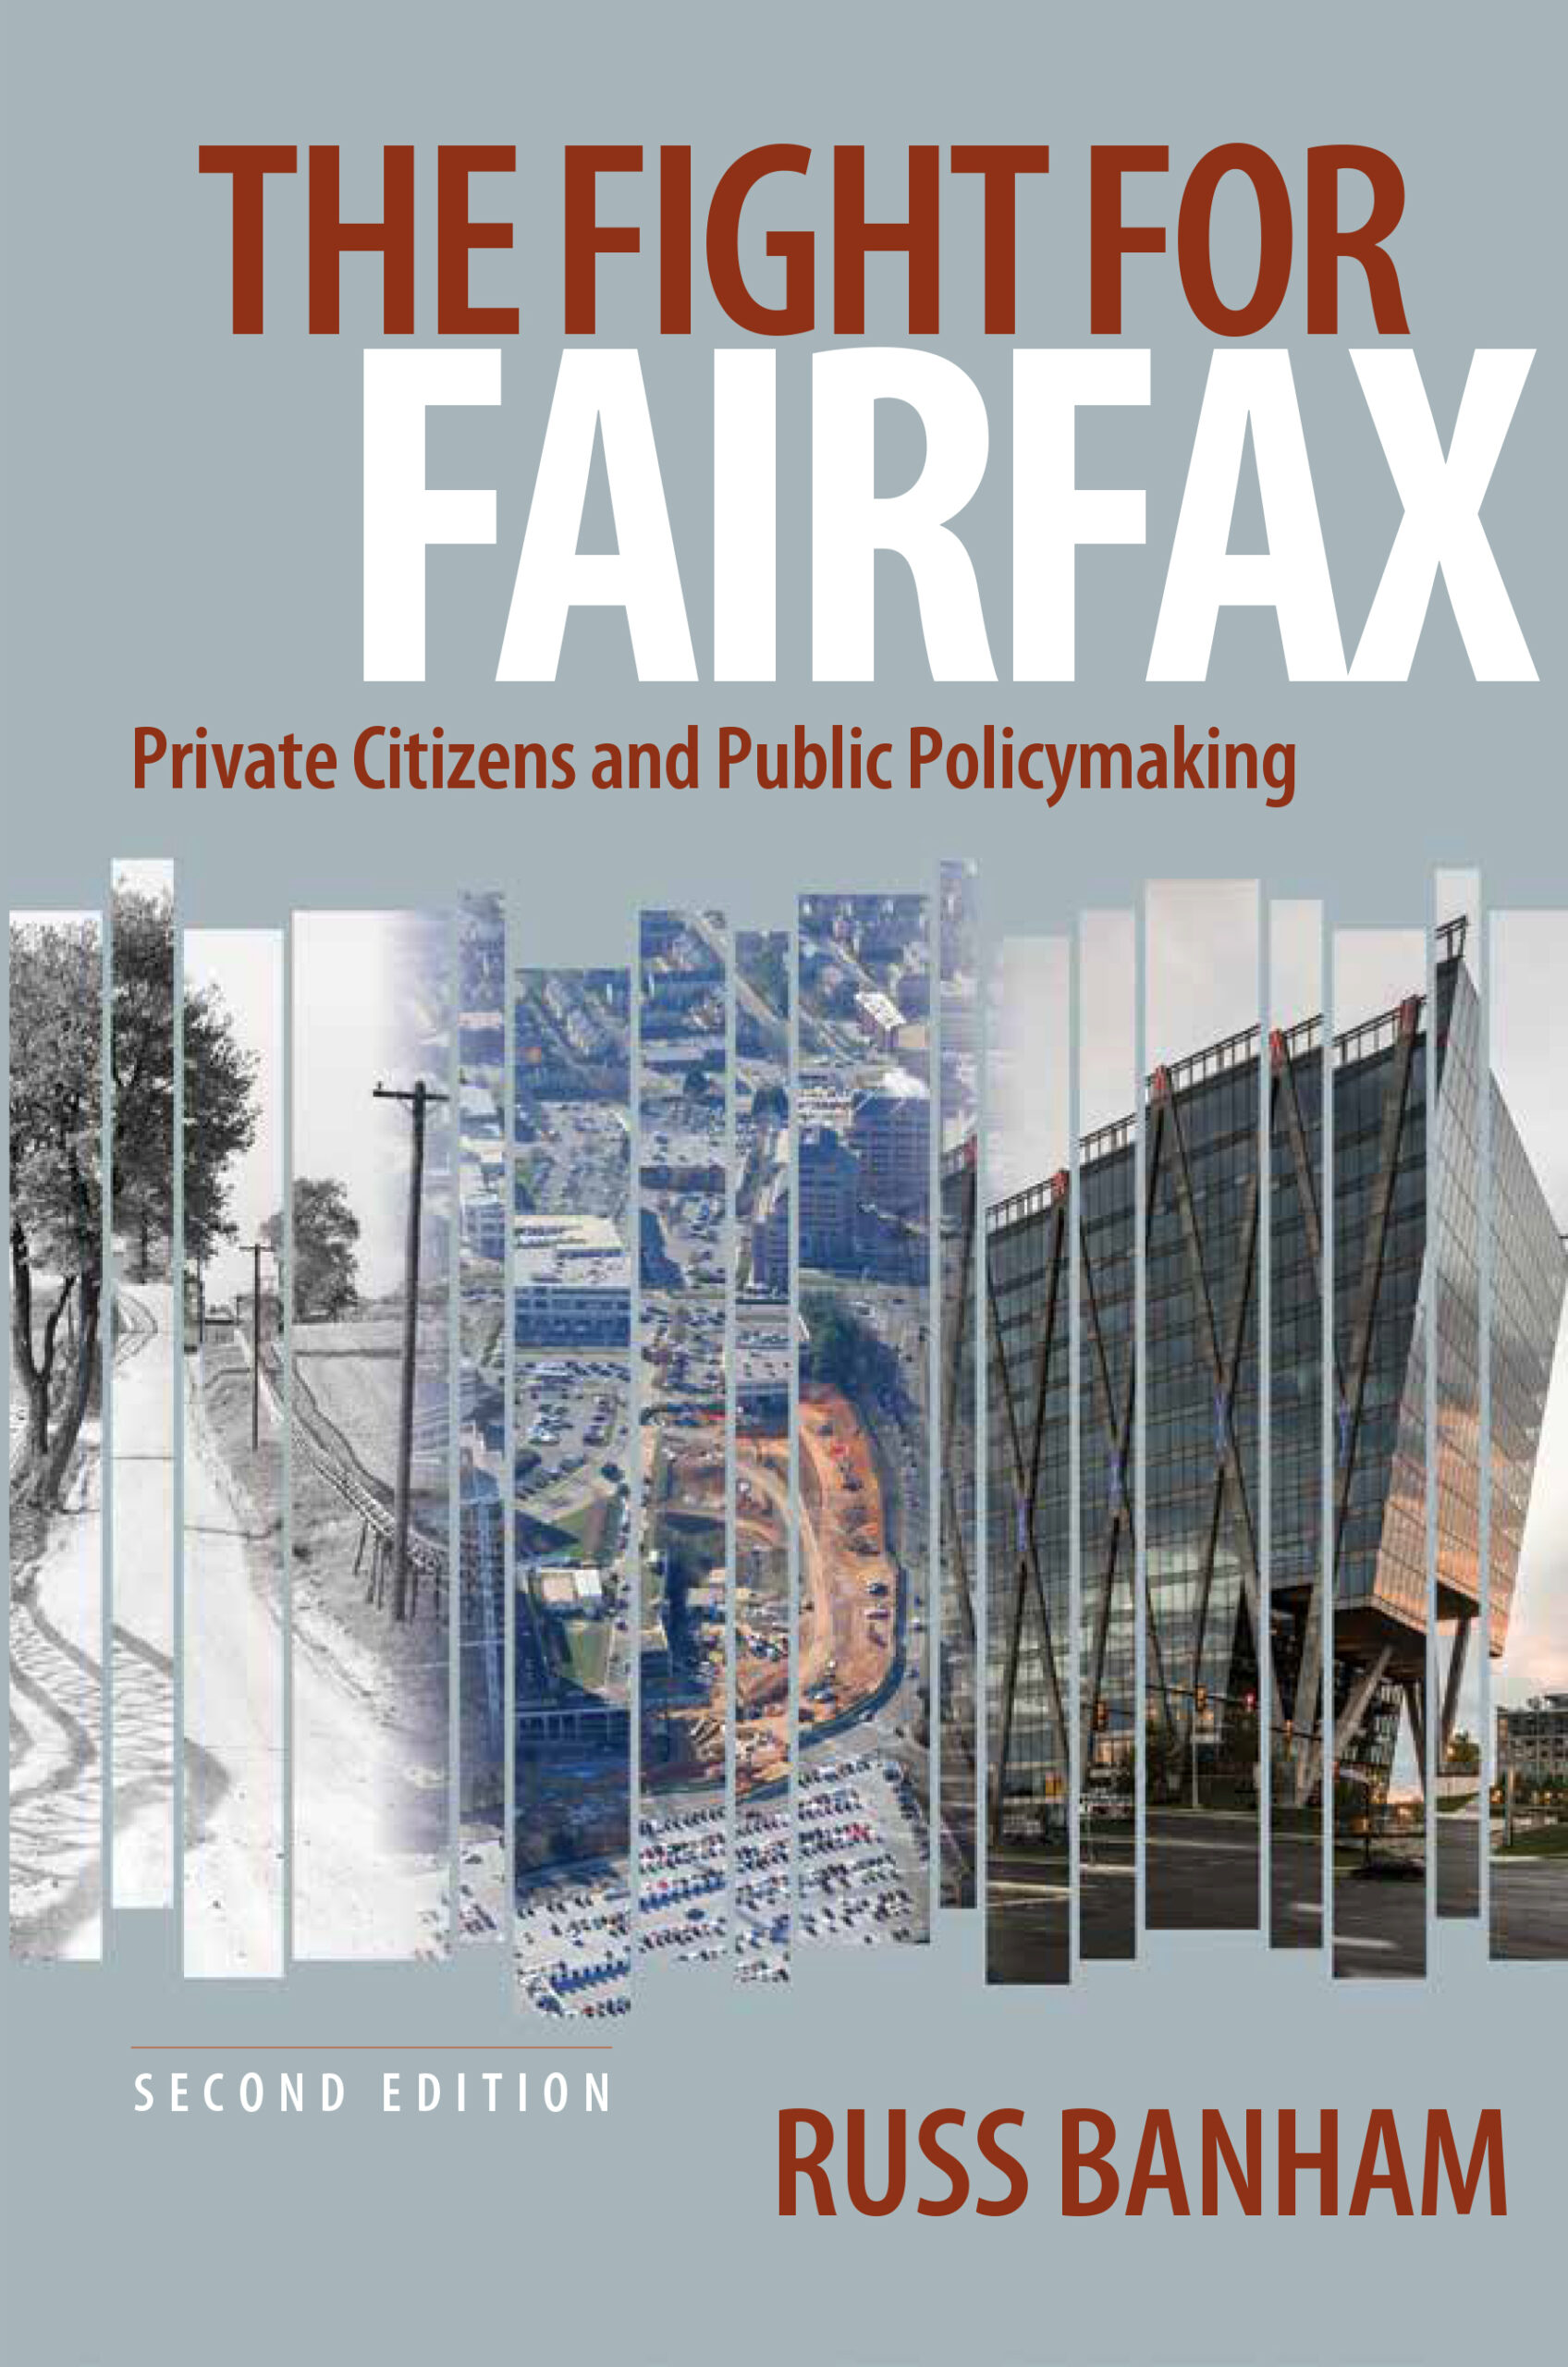 The Fight for Fairfax: Private Citizens and Public Policymaking